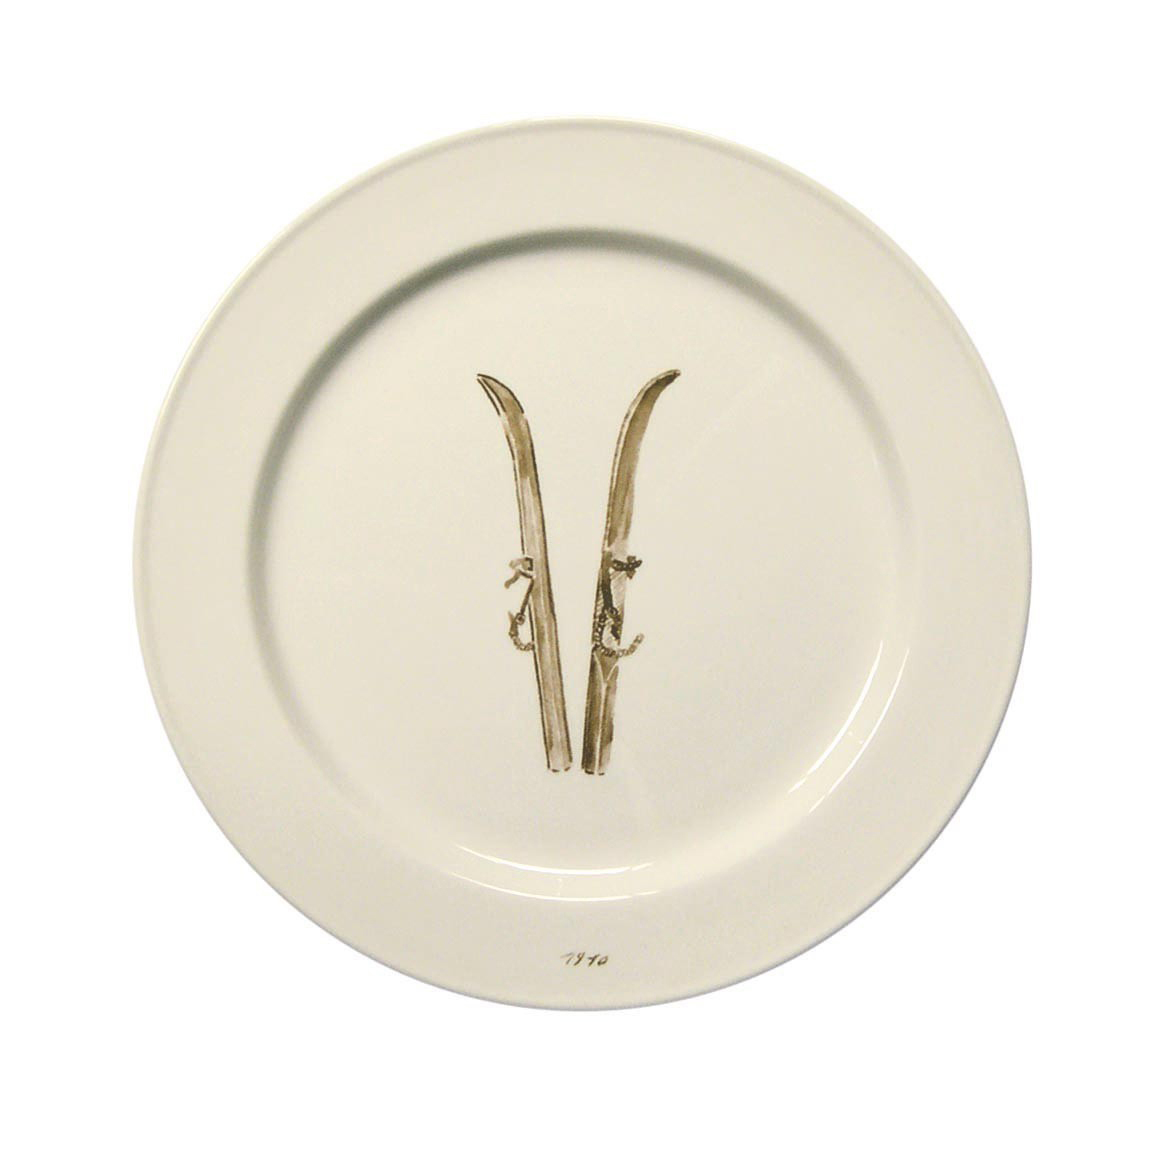 Chehoma Ascentielle Dinnerware Salad or Small Plate Ski-8.39 x .98 h